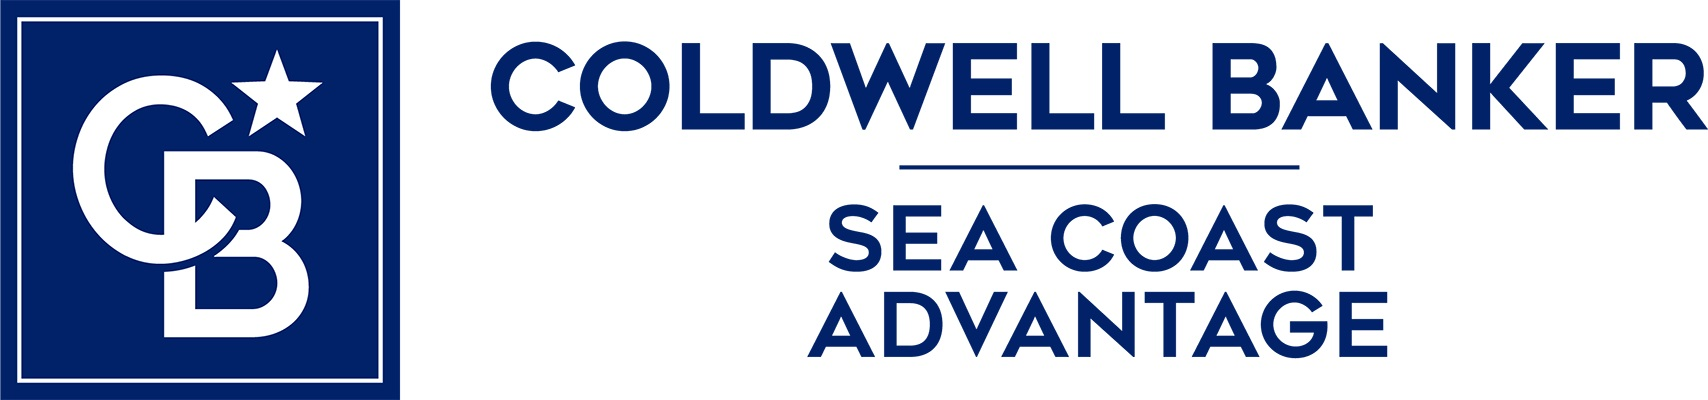 Tom Saffioti - Coldwell Banker Sea Coast Advantage Realty Logo